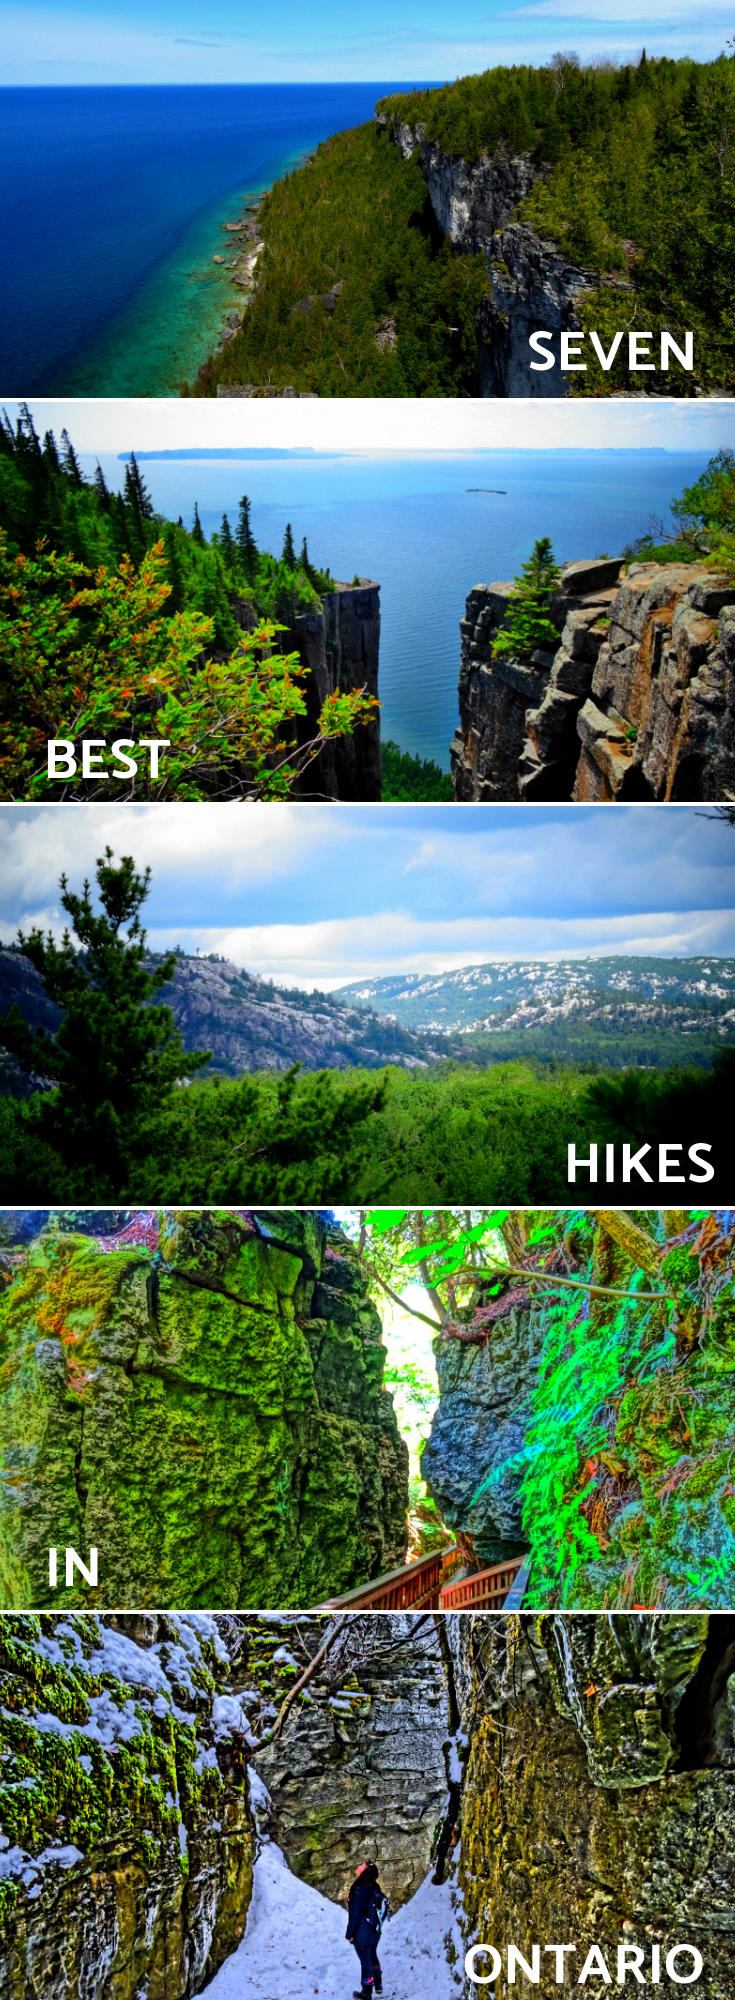 Best Hikes in Ontario with Awesome Views #hikingtrails